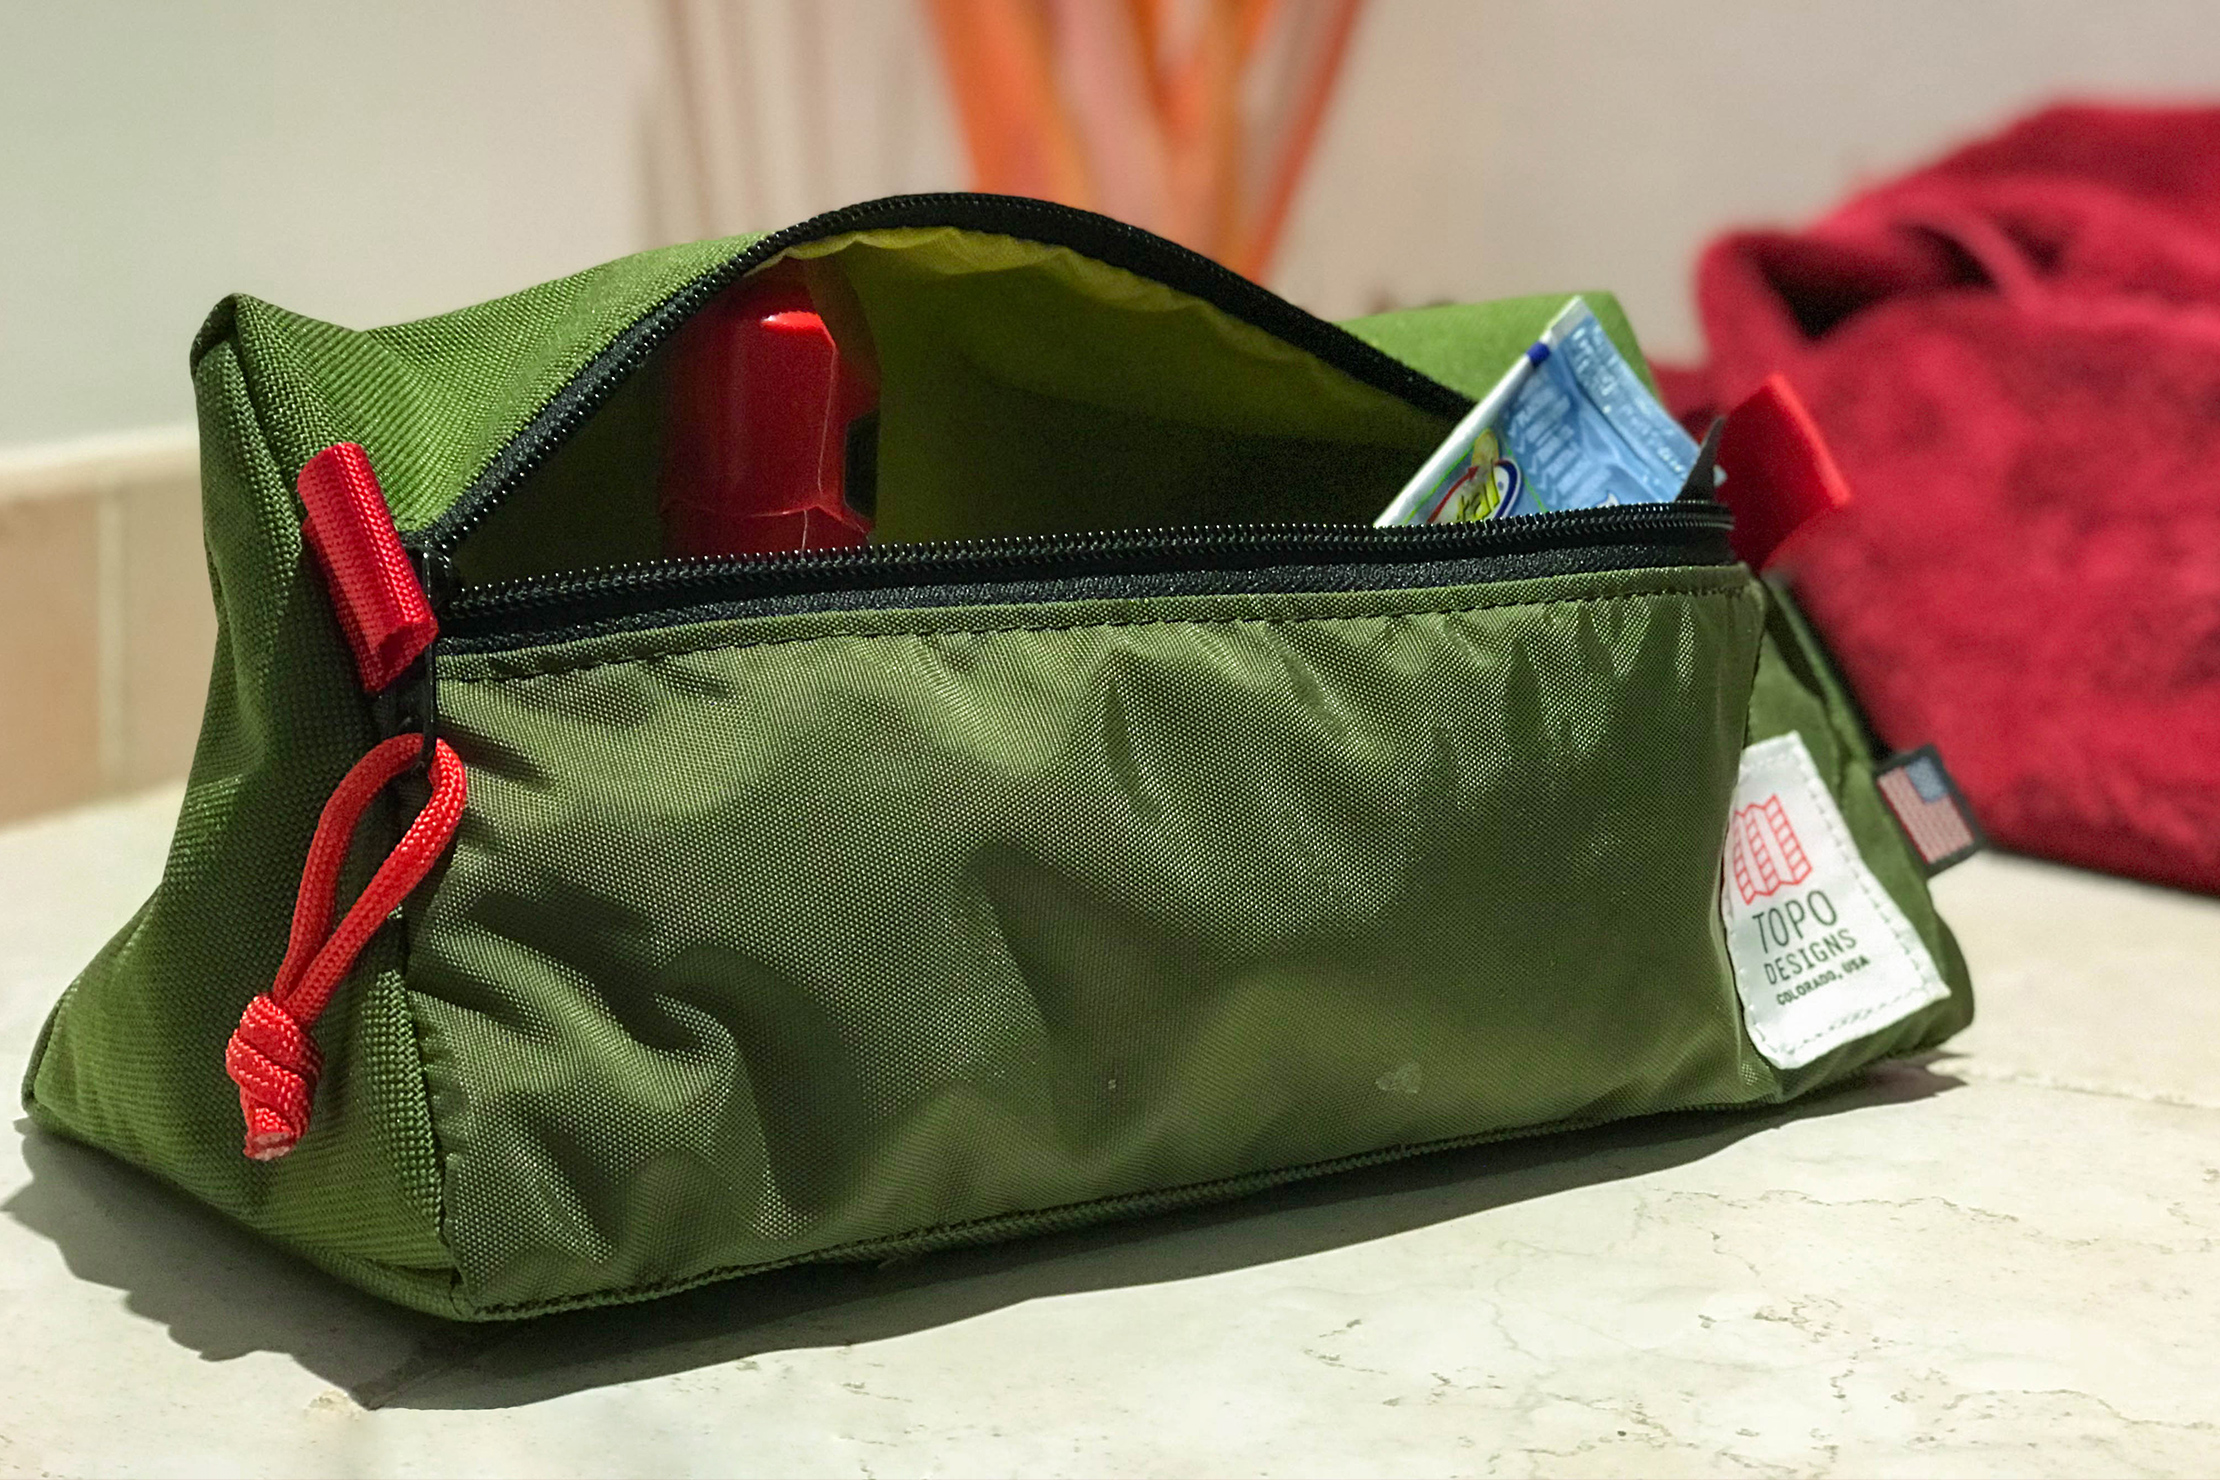 Topo Designs Dopp Kit Toiletries